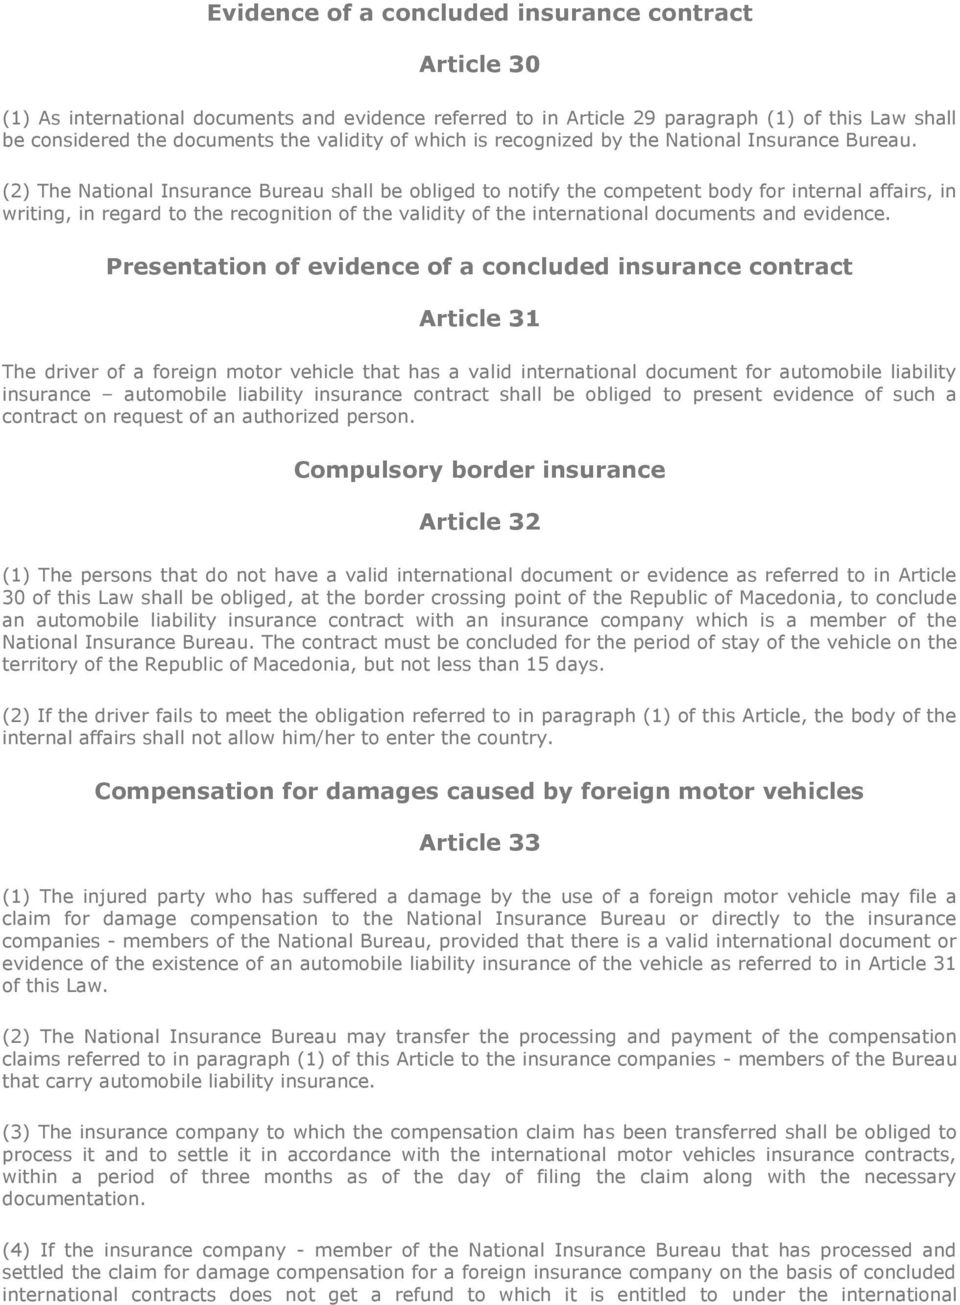 (2) The National Insurance Bureau shall be obliged to notify the competent body for internal affairs, in writing, in regard to the recognition of the validity of the international documents and